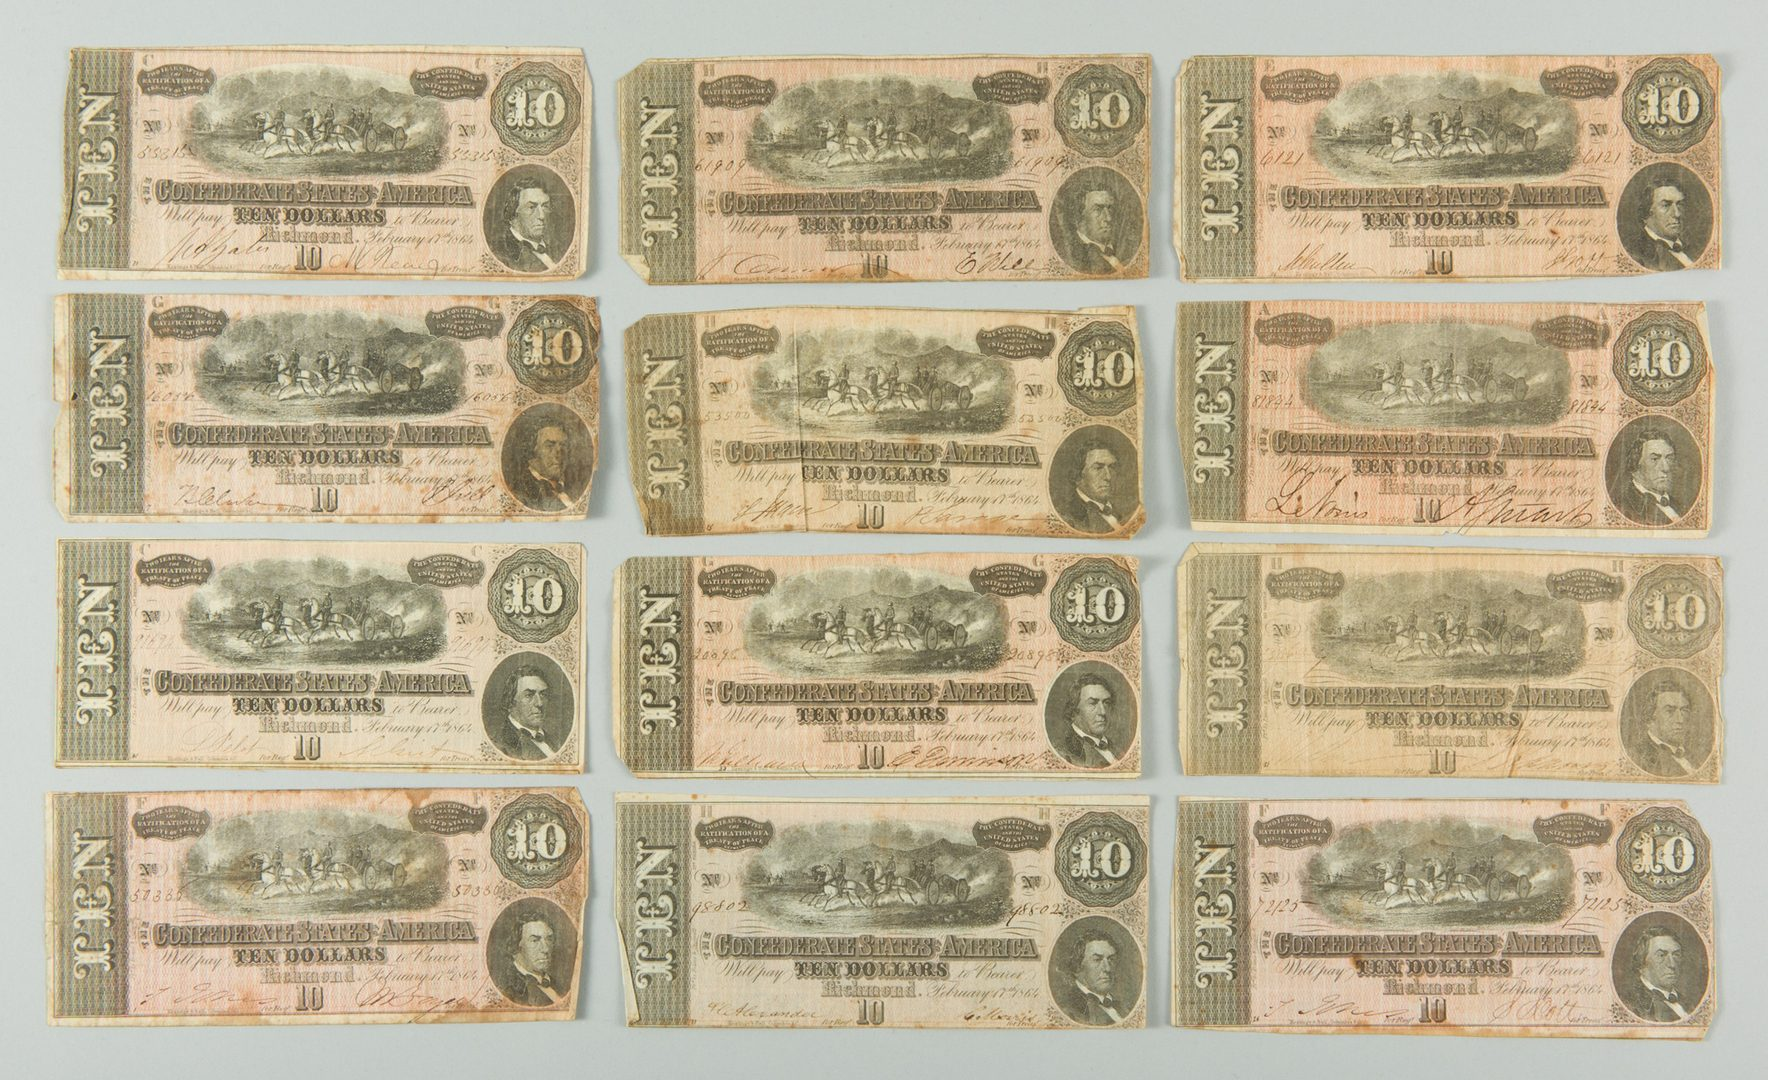 Lot 232: 32 Confederate States of America (CSA) Ten Dollar Bills